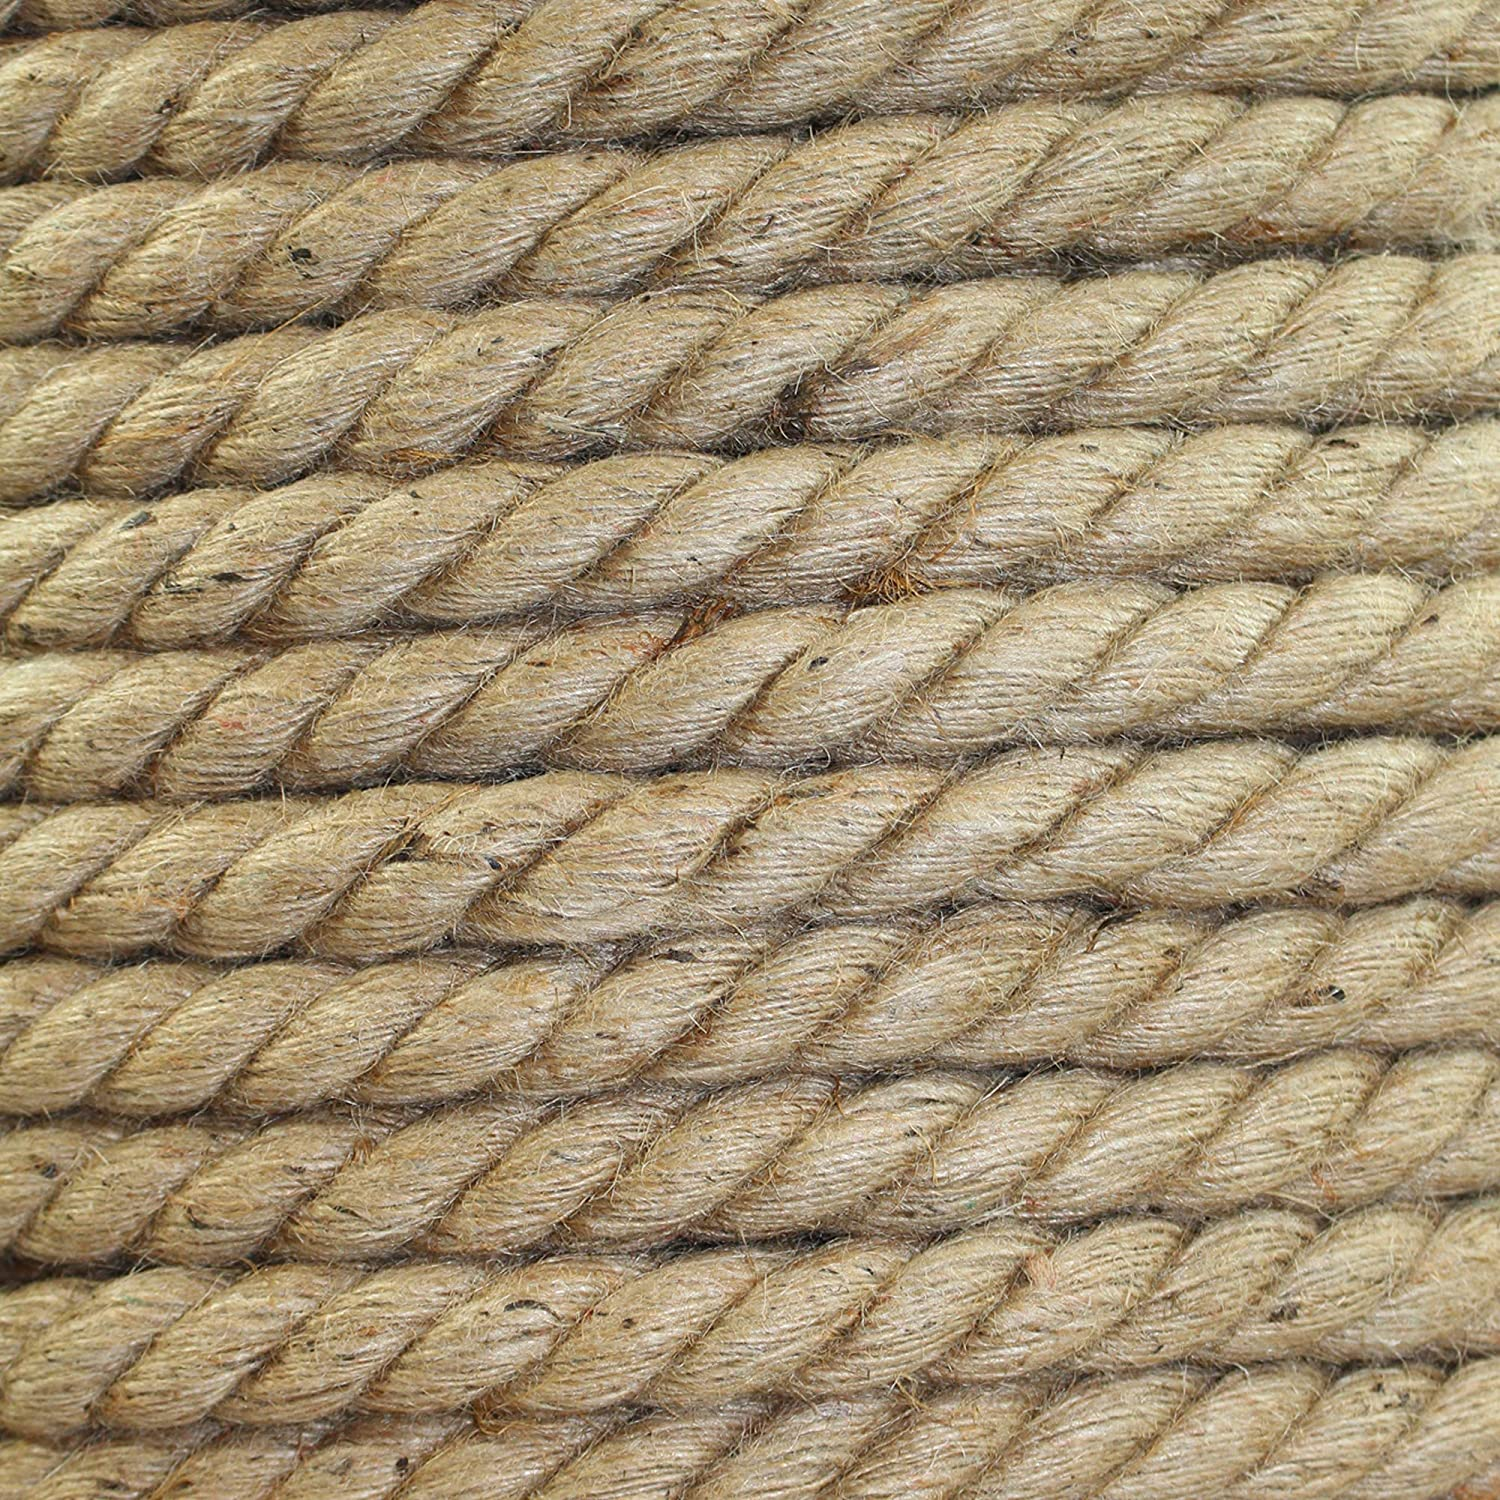 Home Decor /& More Garden 1//4 x 100ft Packing SGT KNOTS Twisted Jute Rope Natural Fiber for Crafts